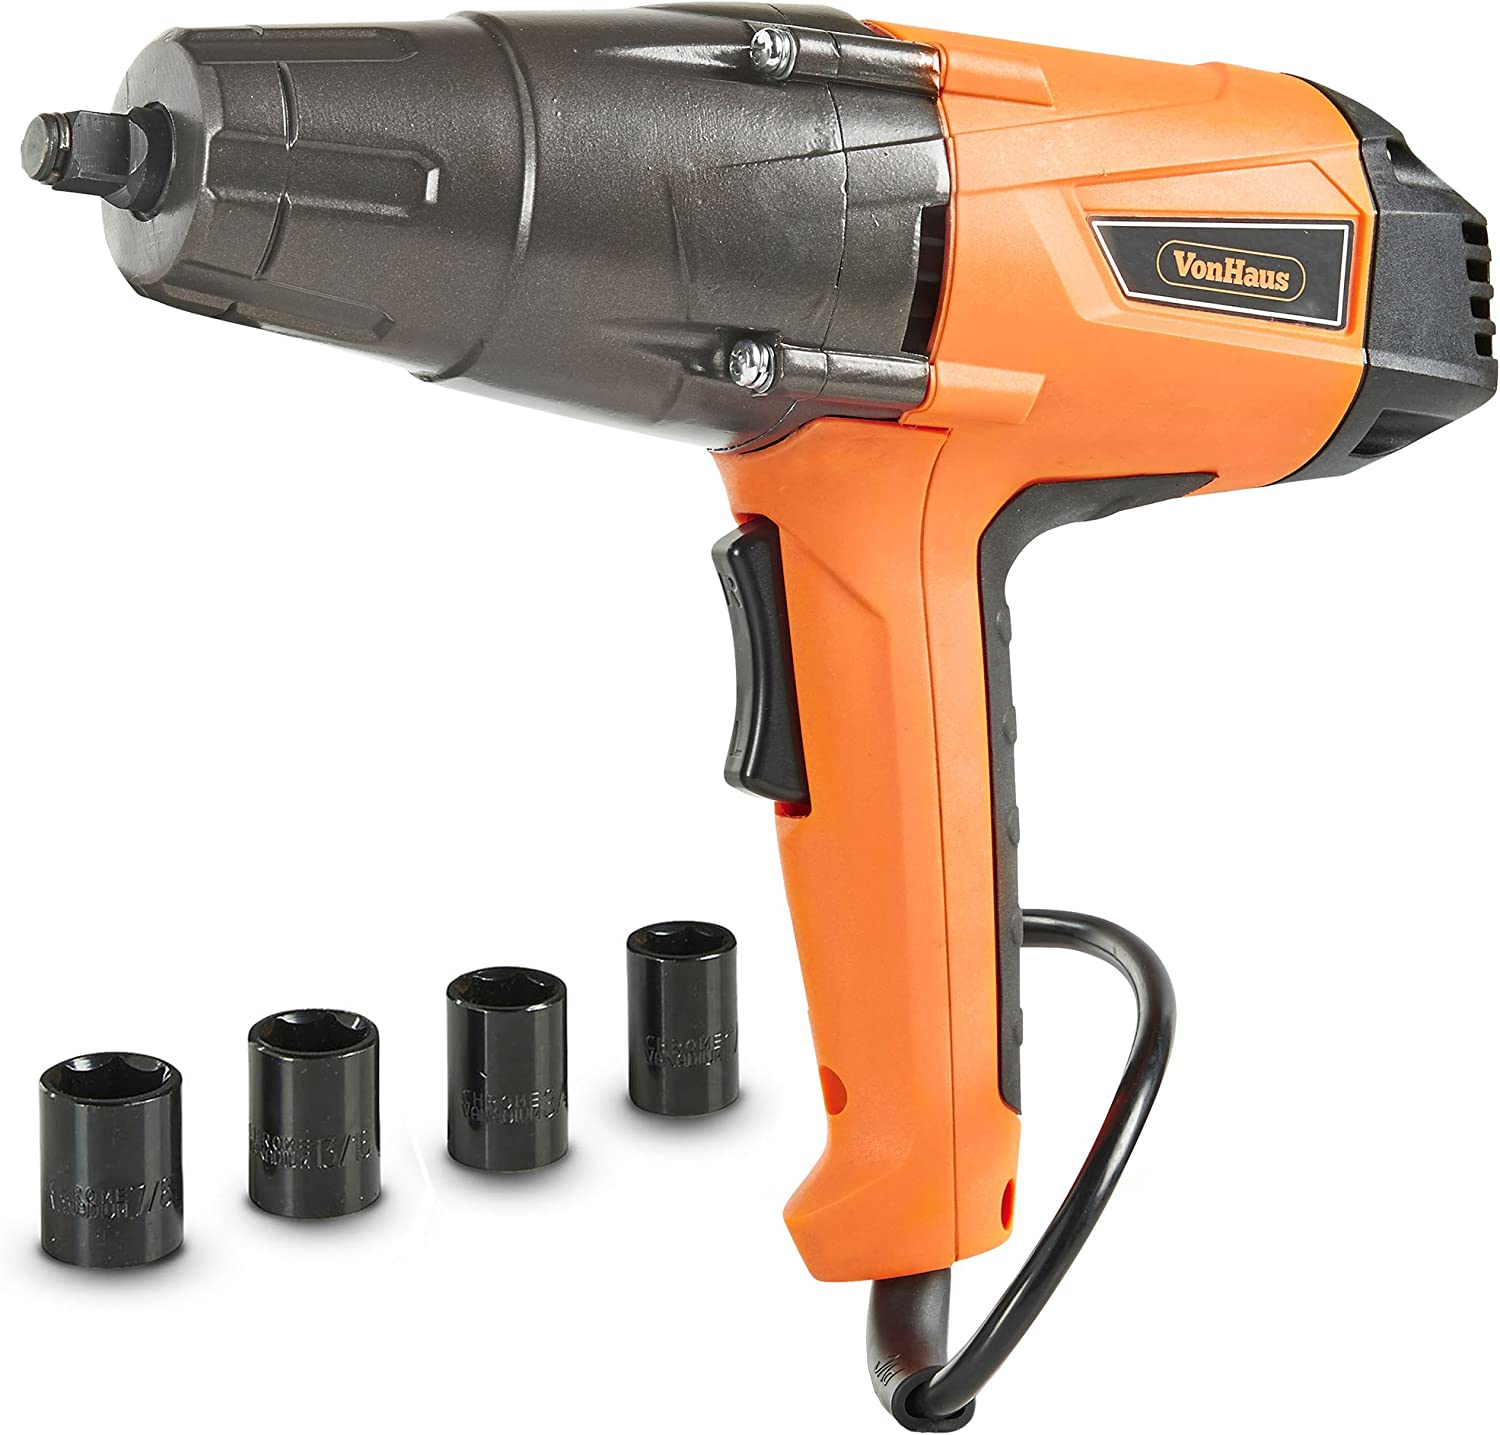 VonHaus 15/194US 1/2-In Corded Impact Wrench